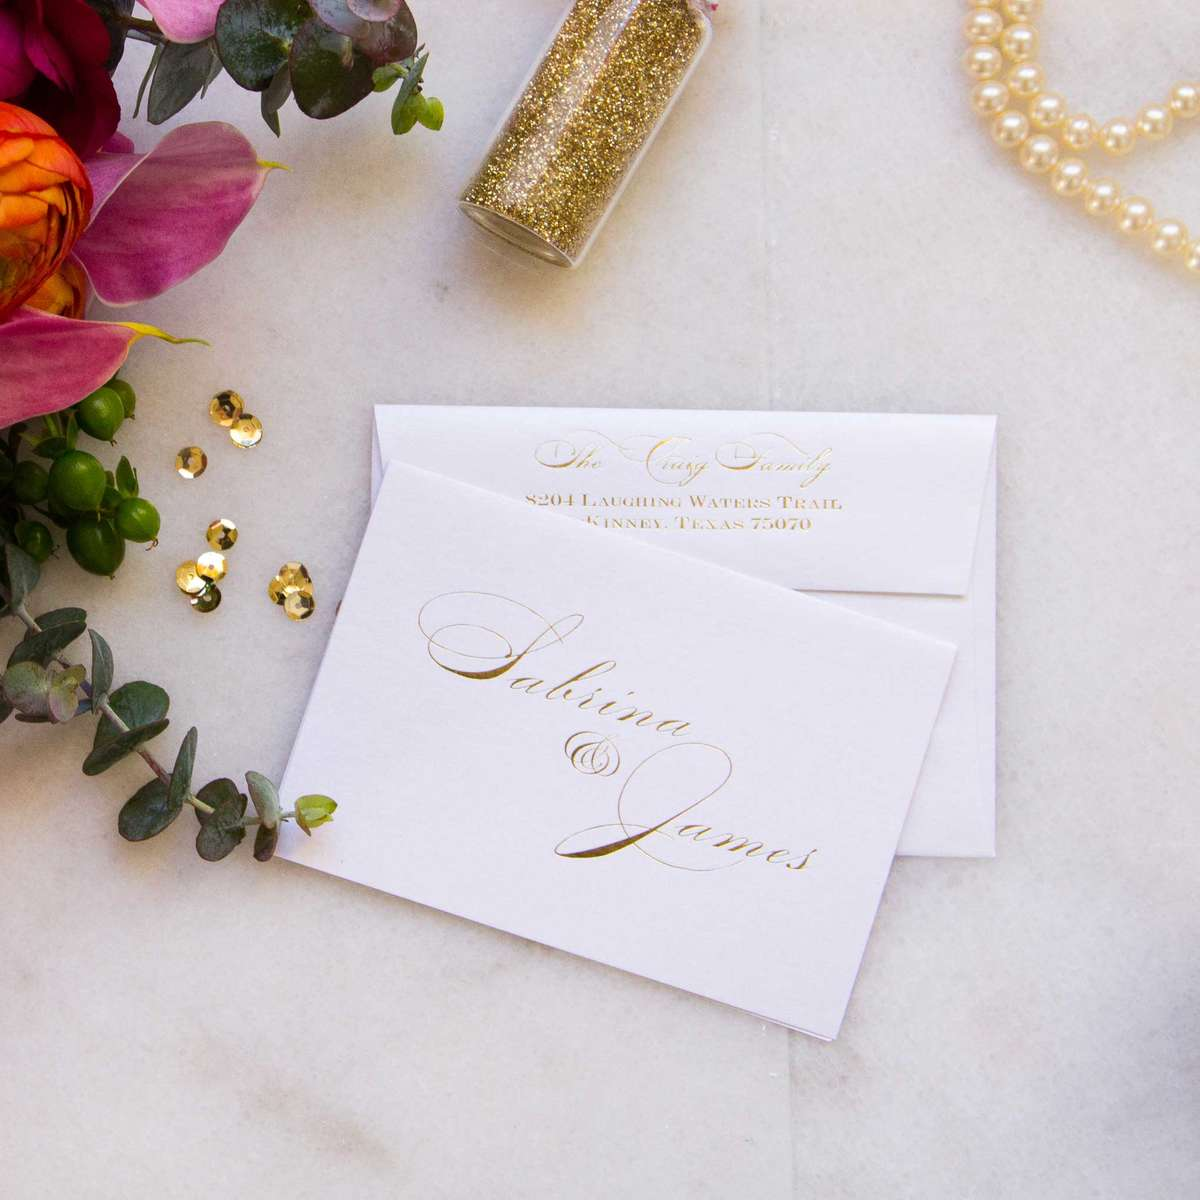 when to send wedding invitations and wedding thank you notes